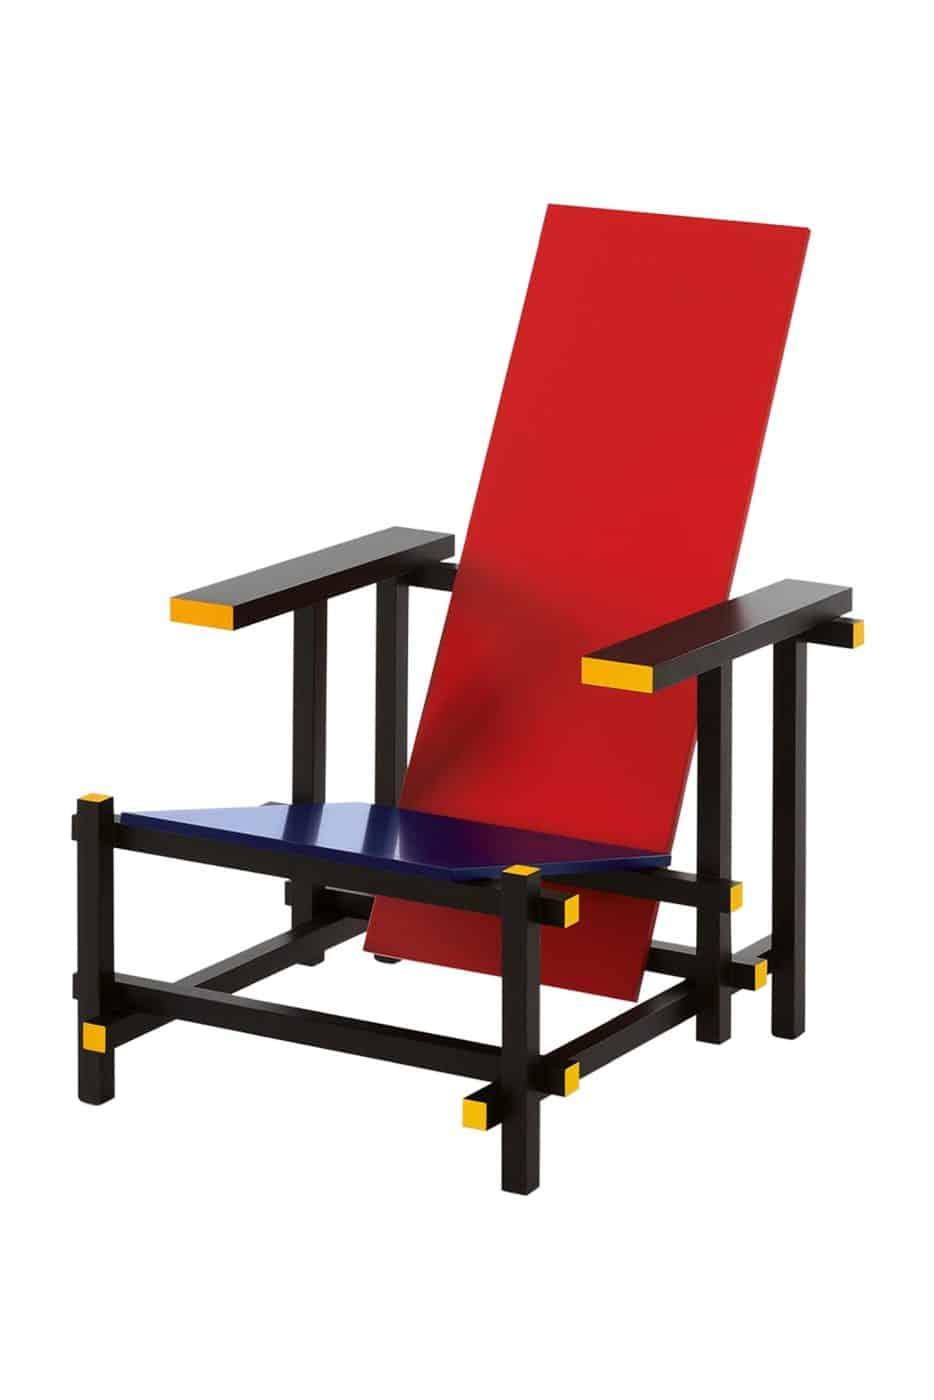 A Cassina reissue of the Rietveld RED AND BLUE CHAIR, offered by DADA Studios